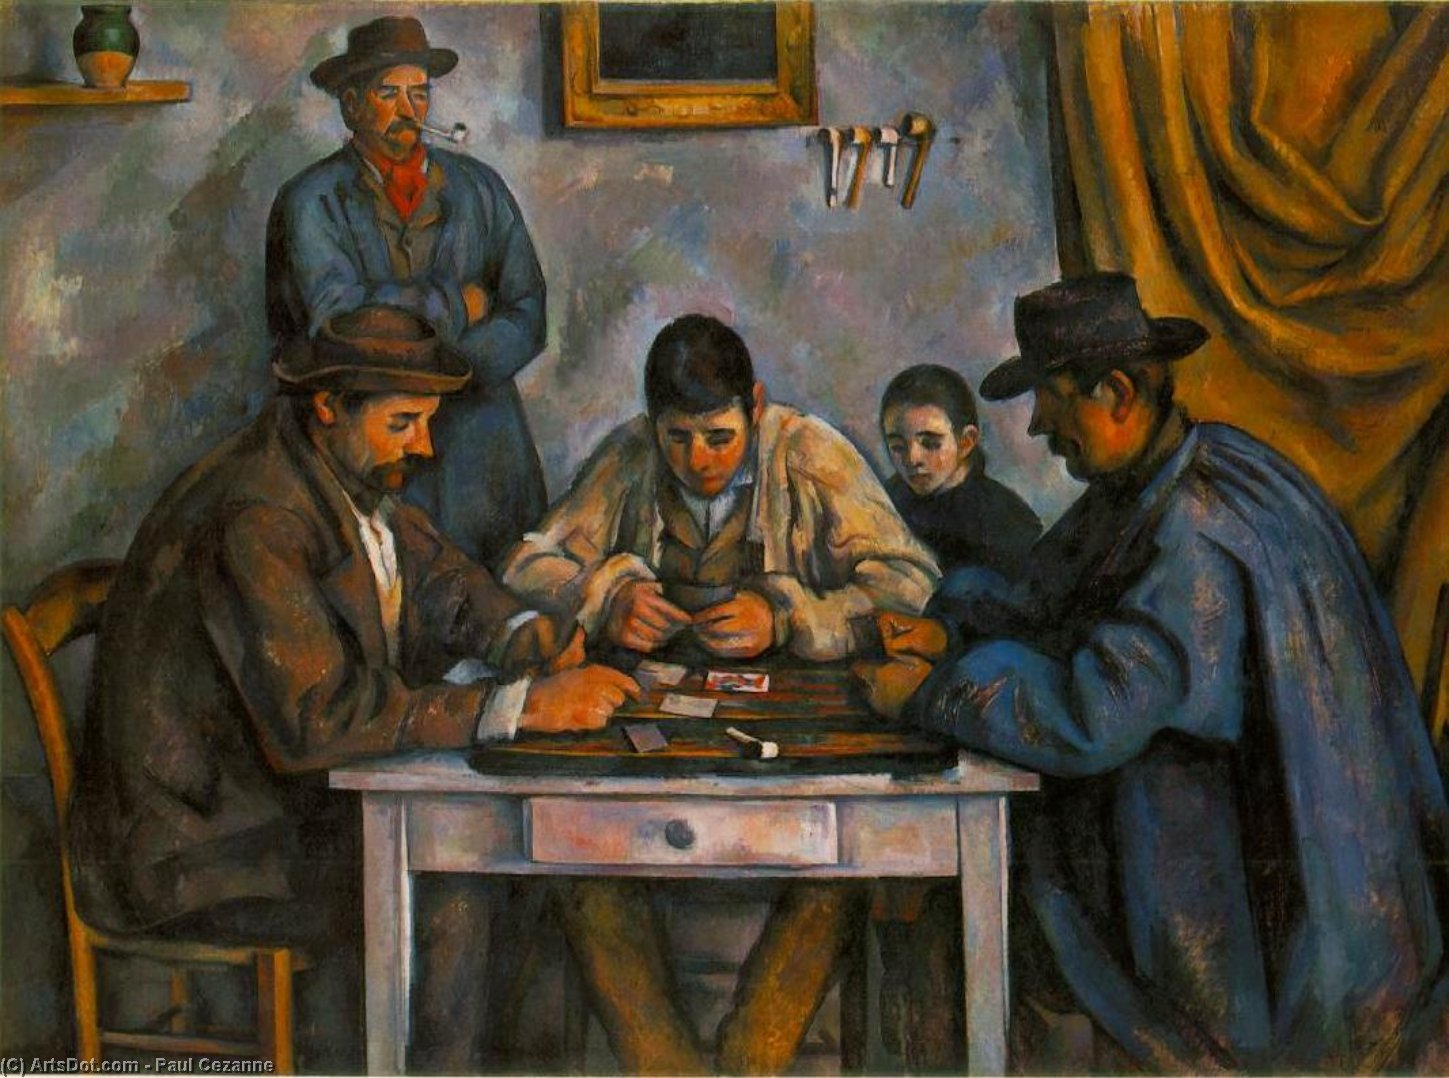 Wikioo.org - The Encyclopedia of Fine Arts - Painting, Artwork by Paul Cezanne - the card players